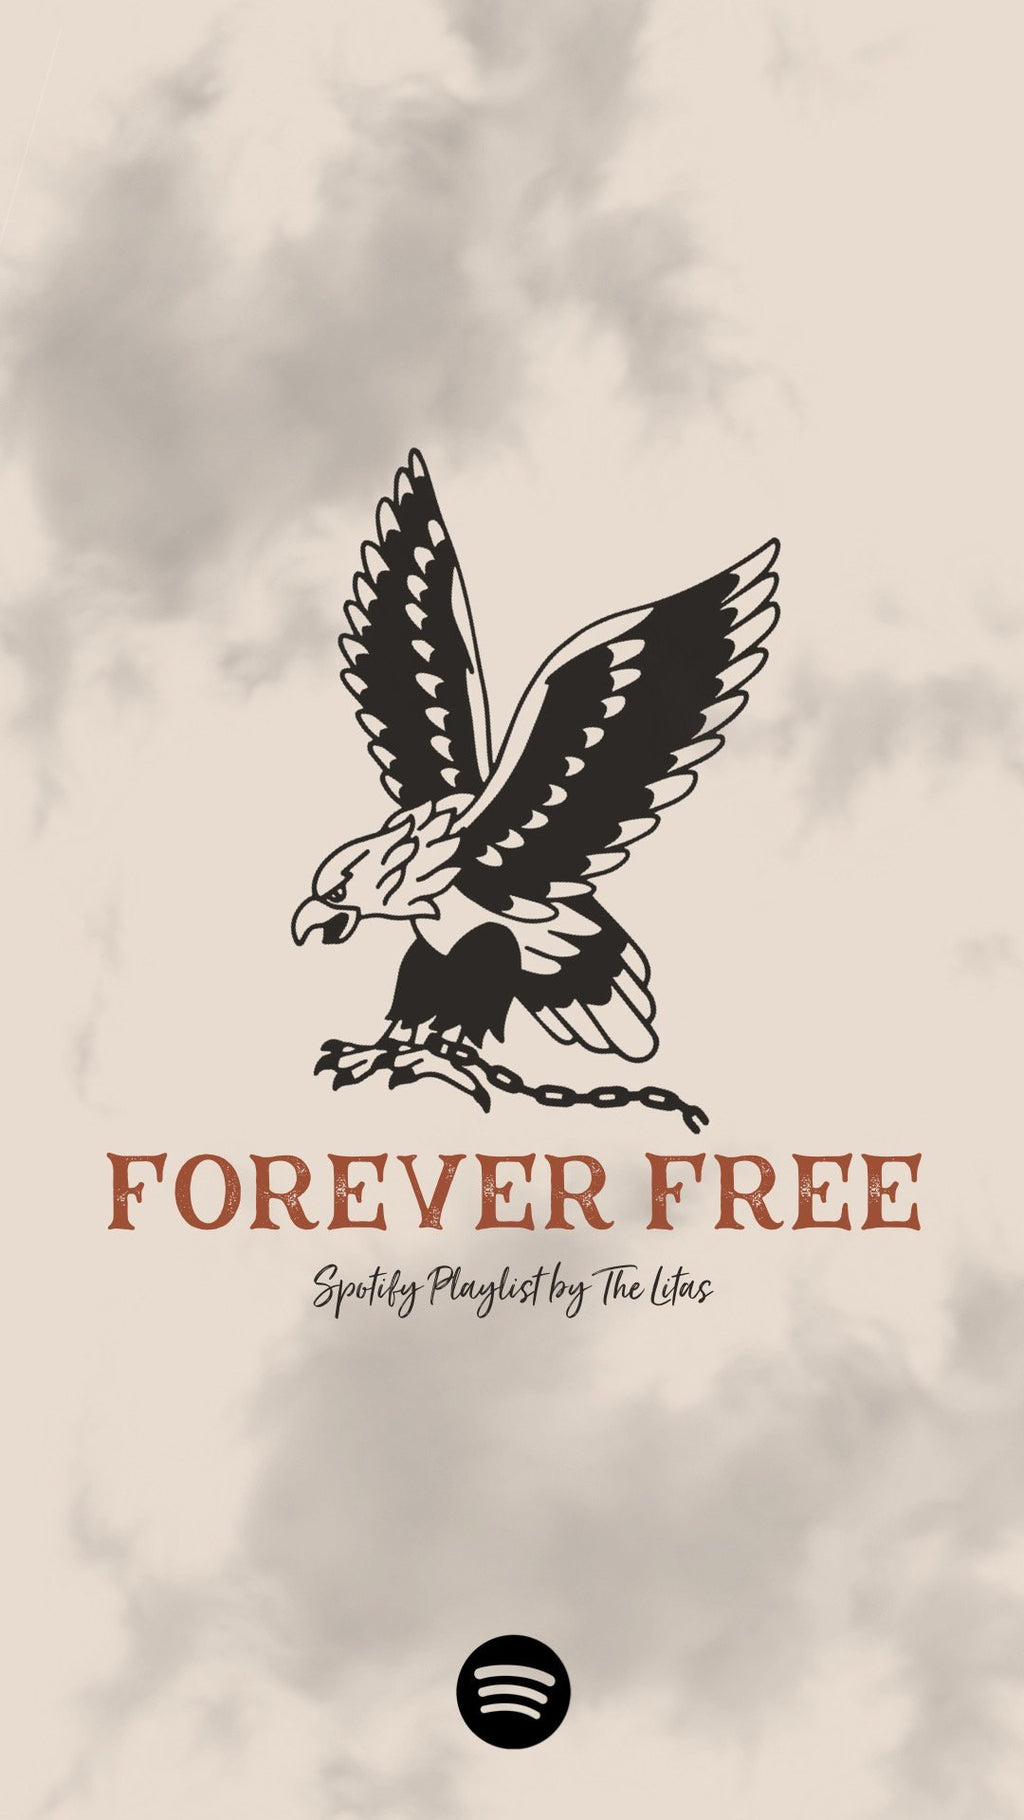 SPOTIFY PLAYLIST: FOREVER FREE